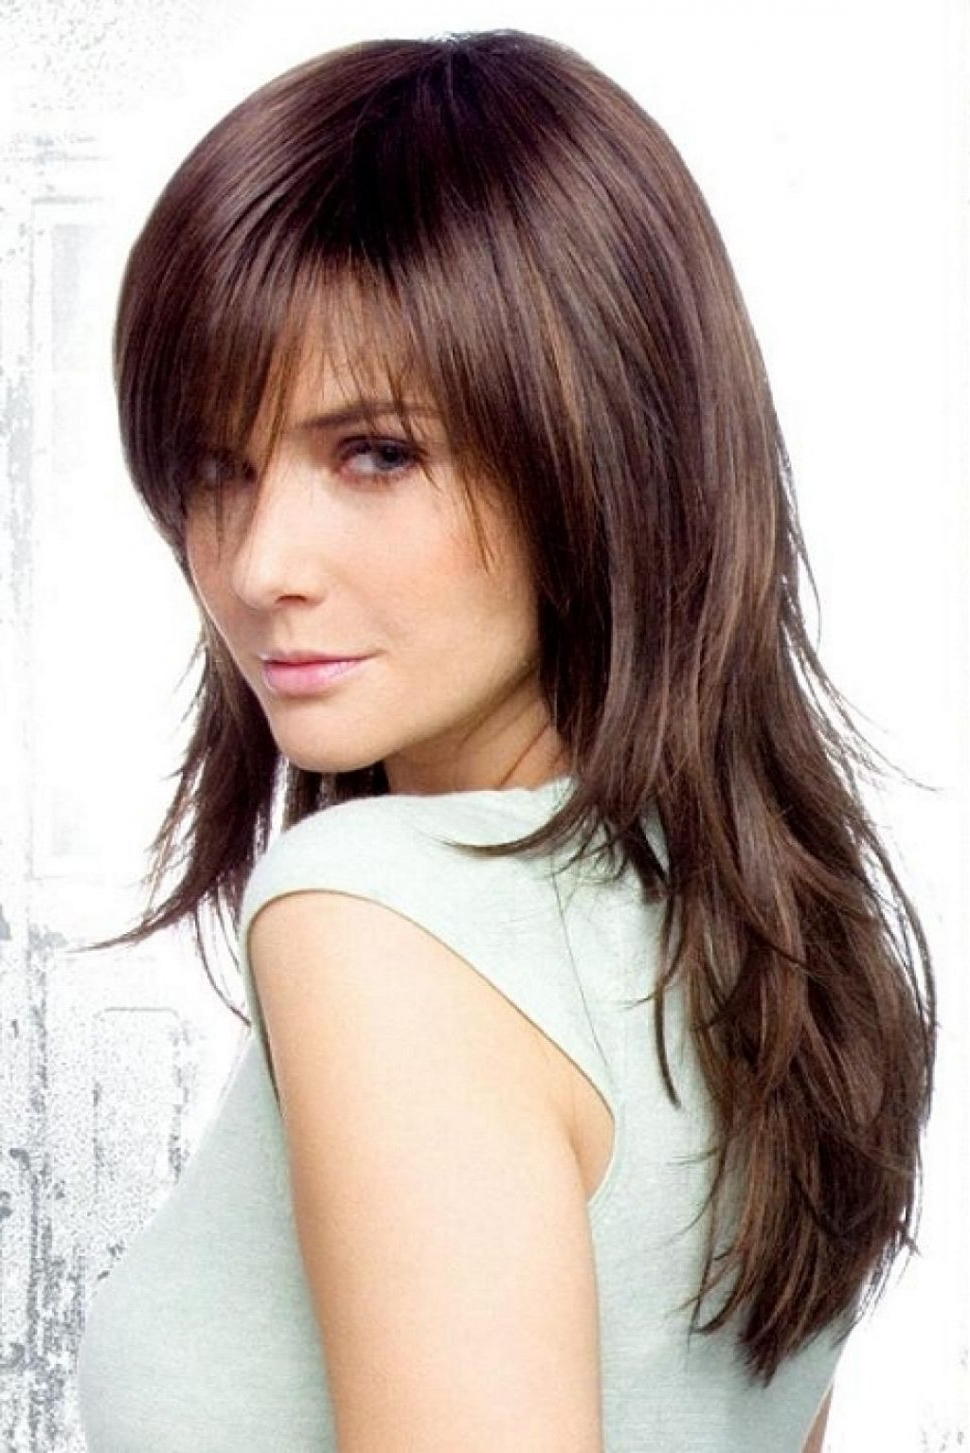 Hair Cuts : Remarkable Medium Haircuts With Bangs And Layers For In Preferred Cute Medium Haircuts With Bangs And Layers (View 12 of 20)